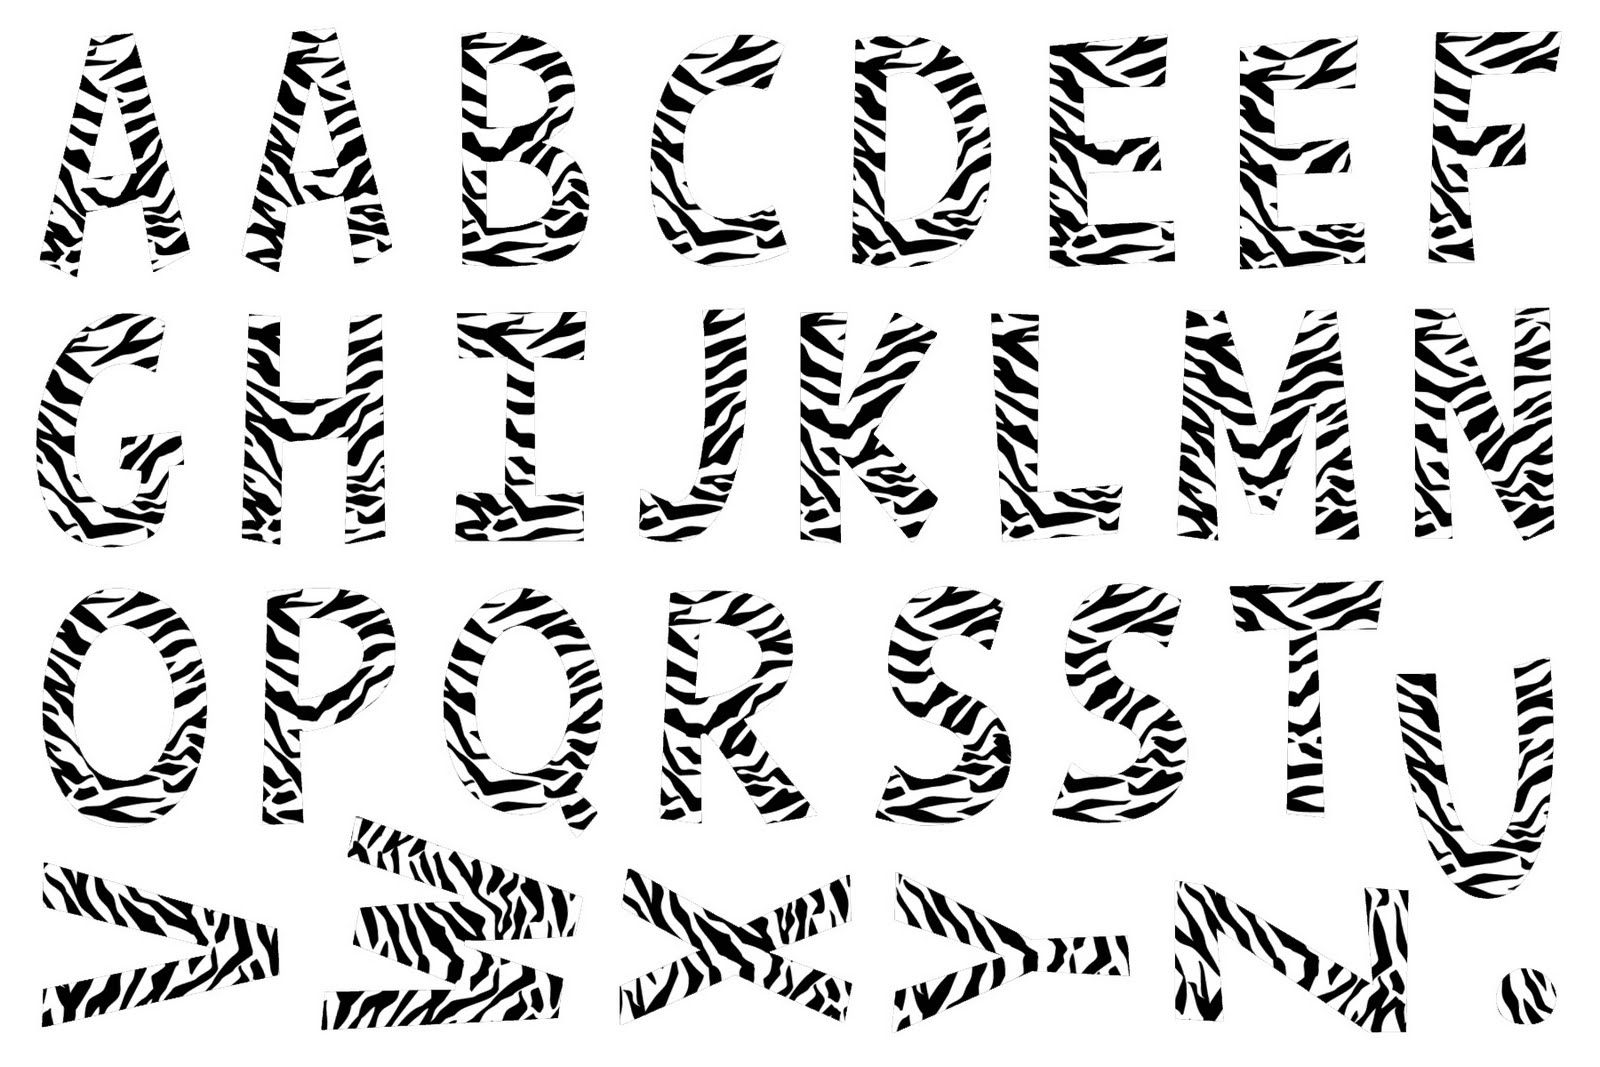 Printable zebra alphabet...cut out and spell out anything